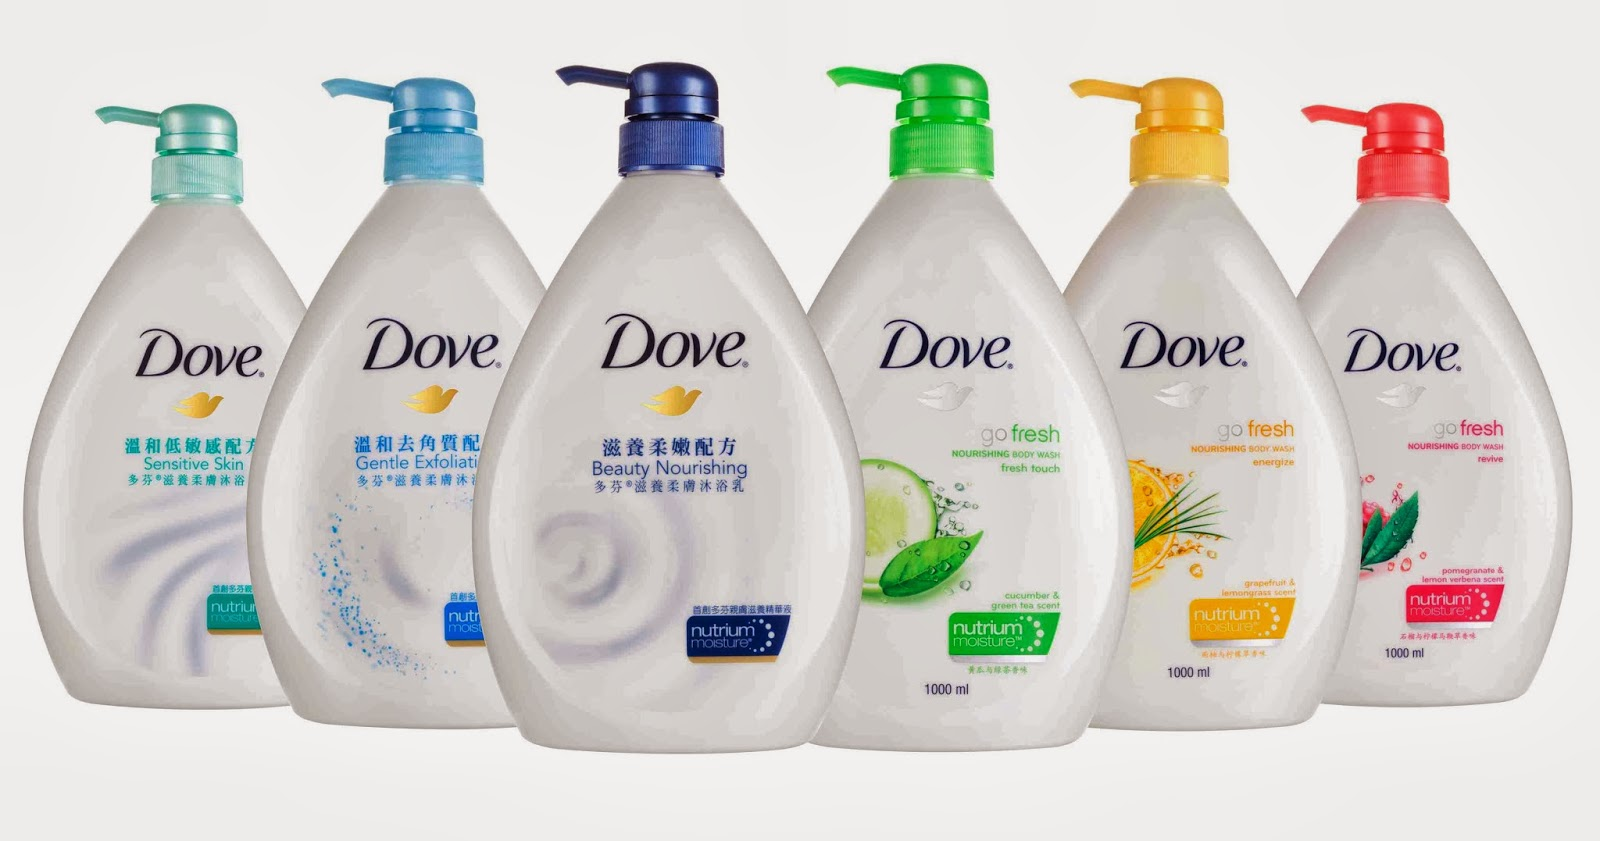 dove-body-wash-launch-malaysia